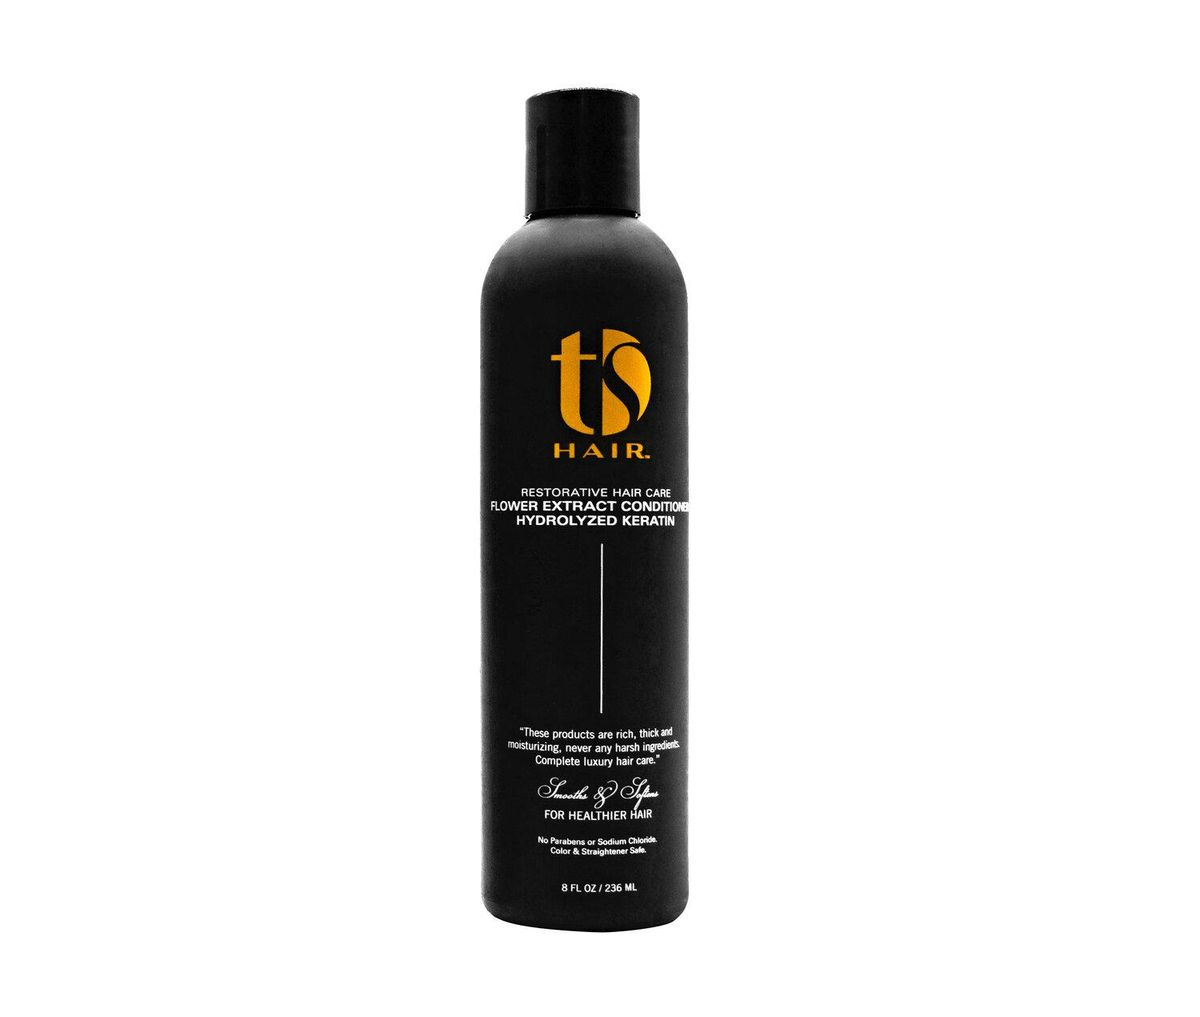 tsd hair restorative hair care flower extract conditioner